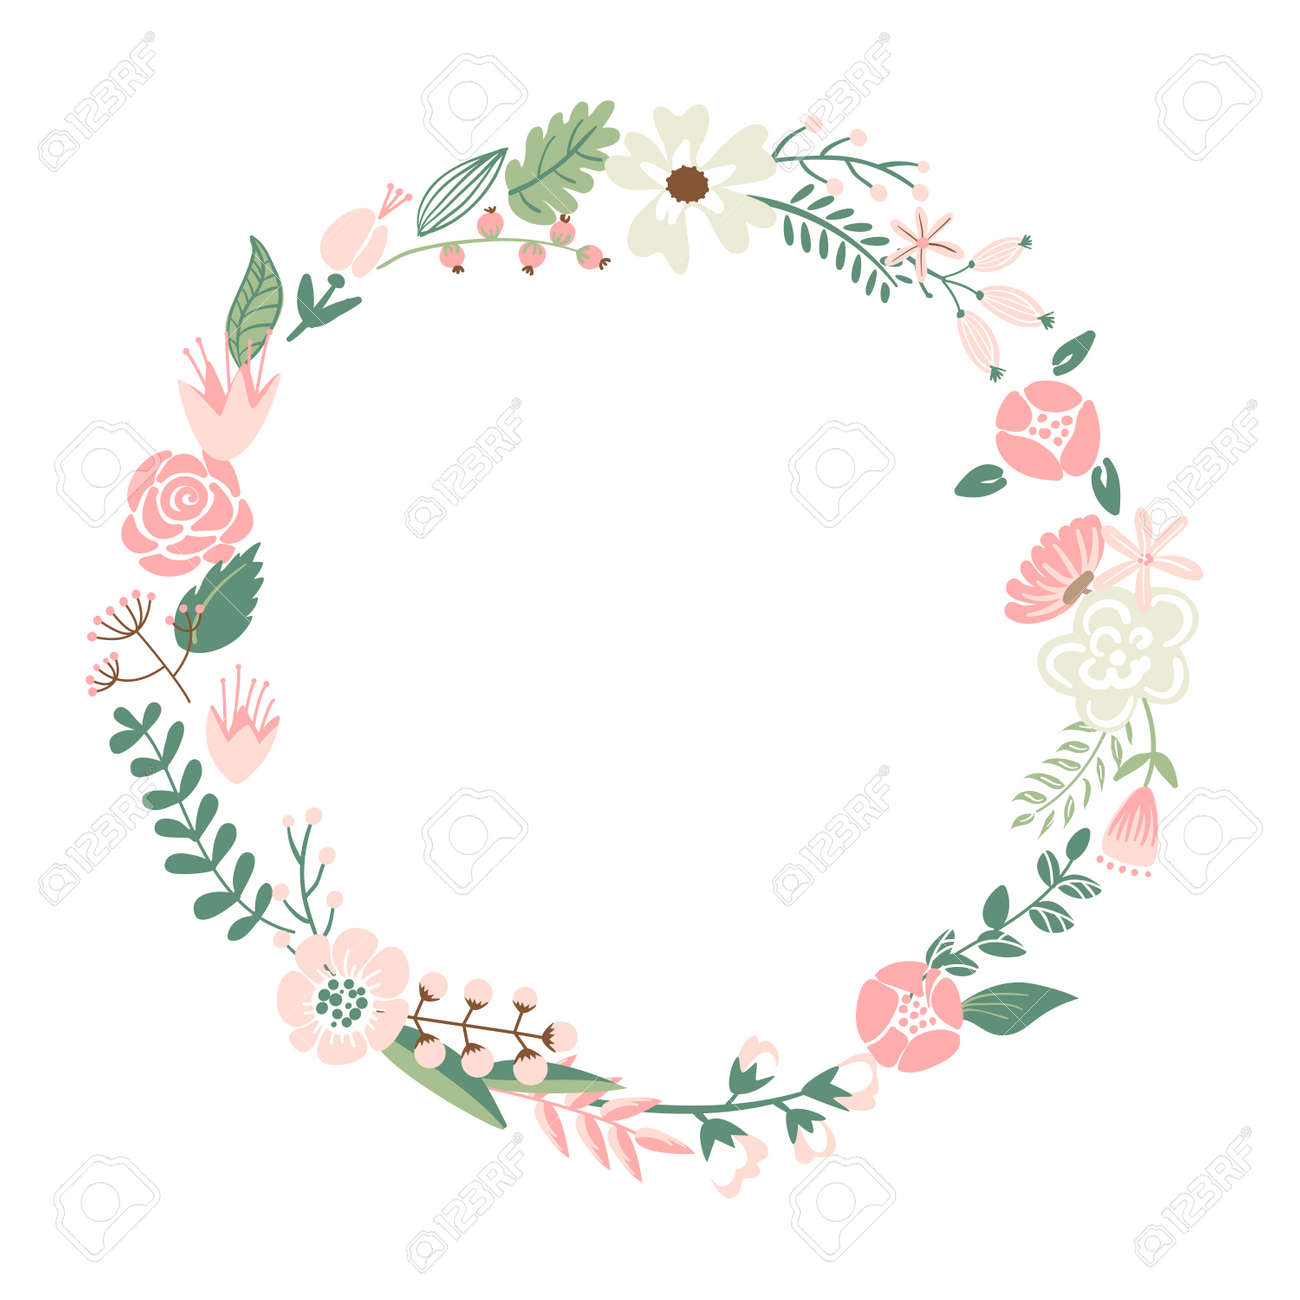 Cute Retro Flowers Arranged In A Shape Of The Wreath Perfect Royalty